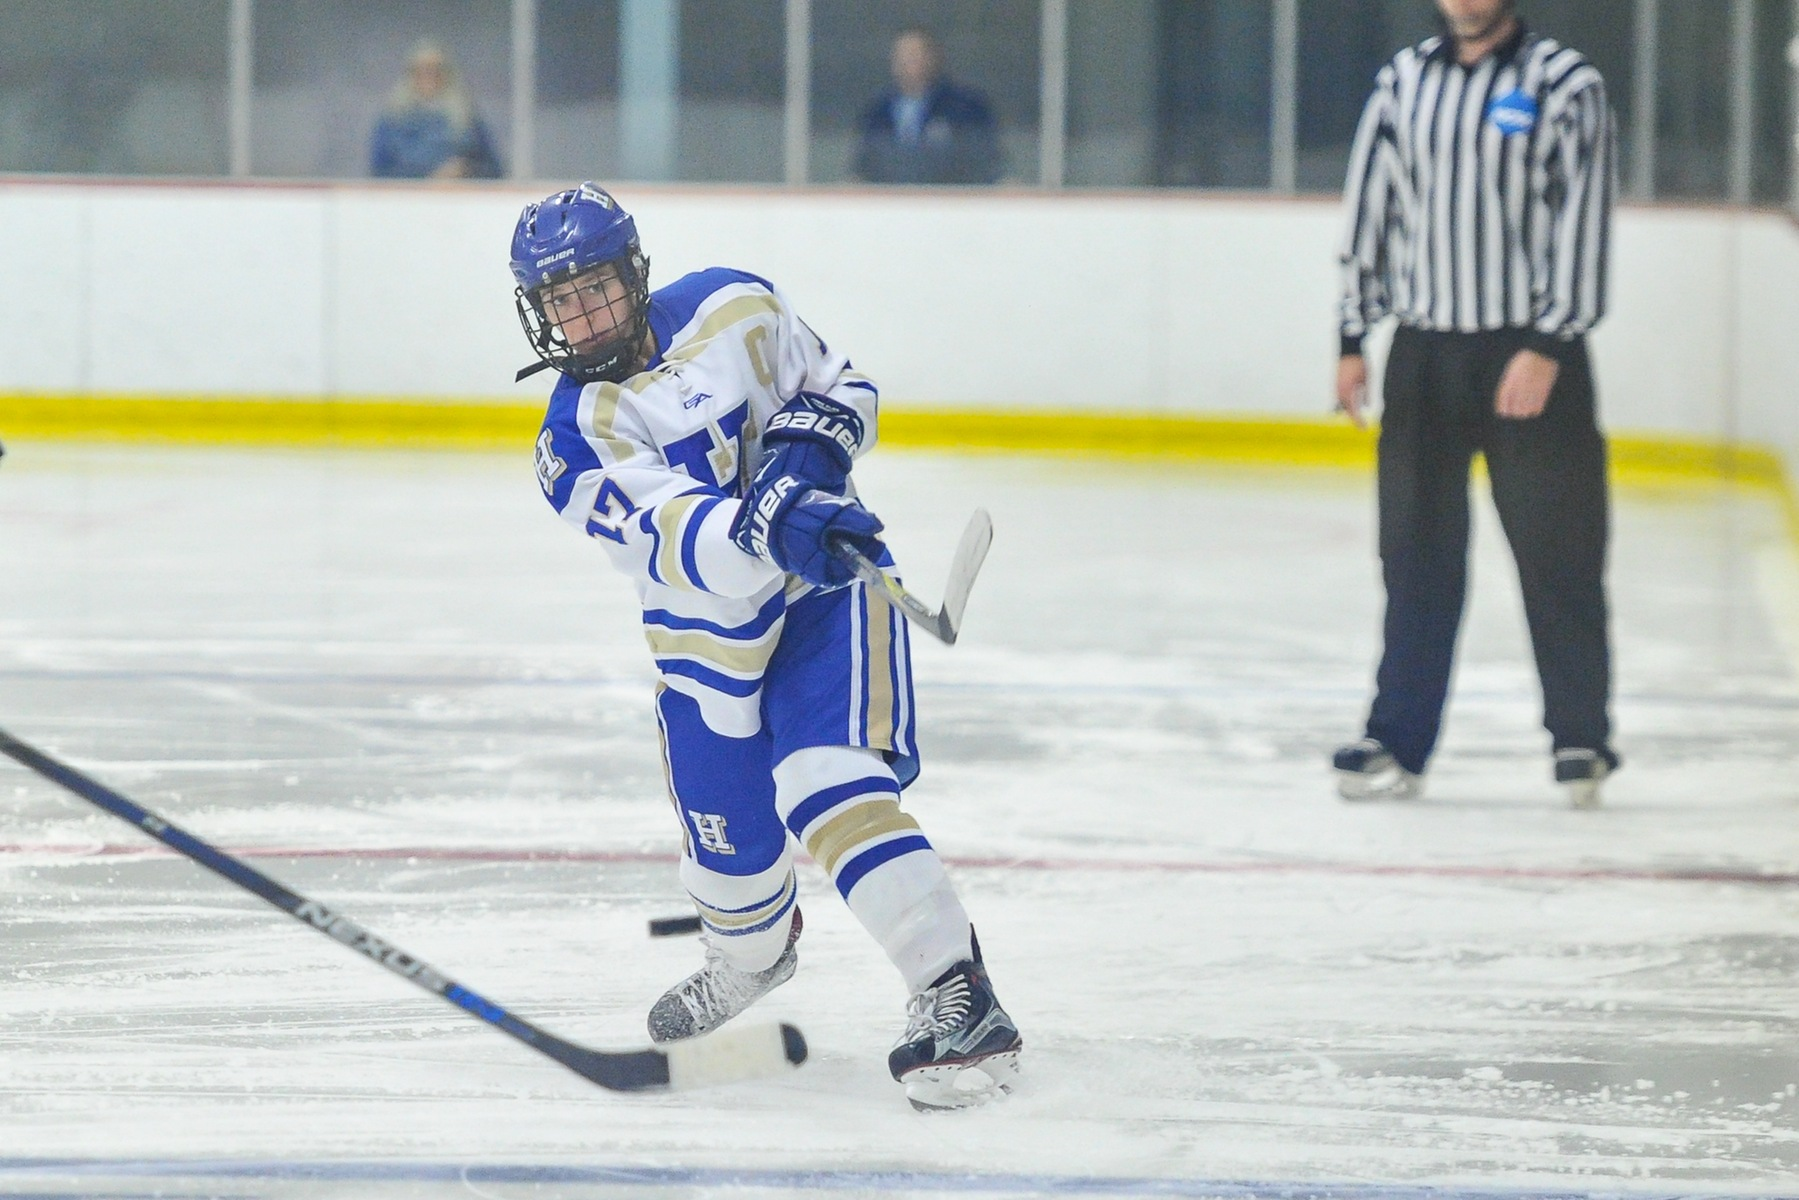 Captain Caroline Knop '18 scored her fourth career goal against Plymouth State (Josh McKee photo).